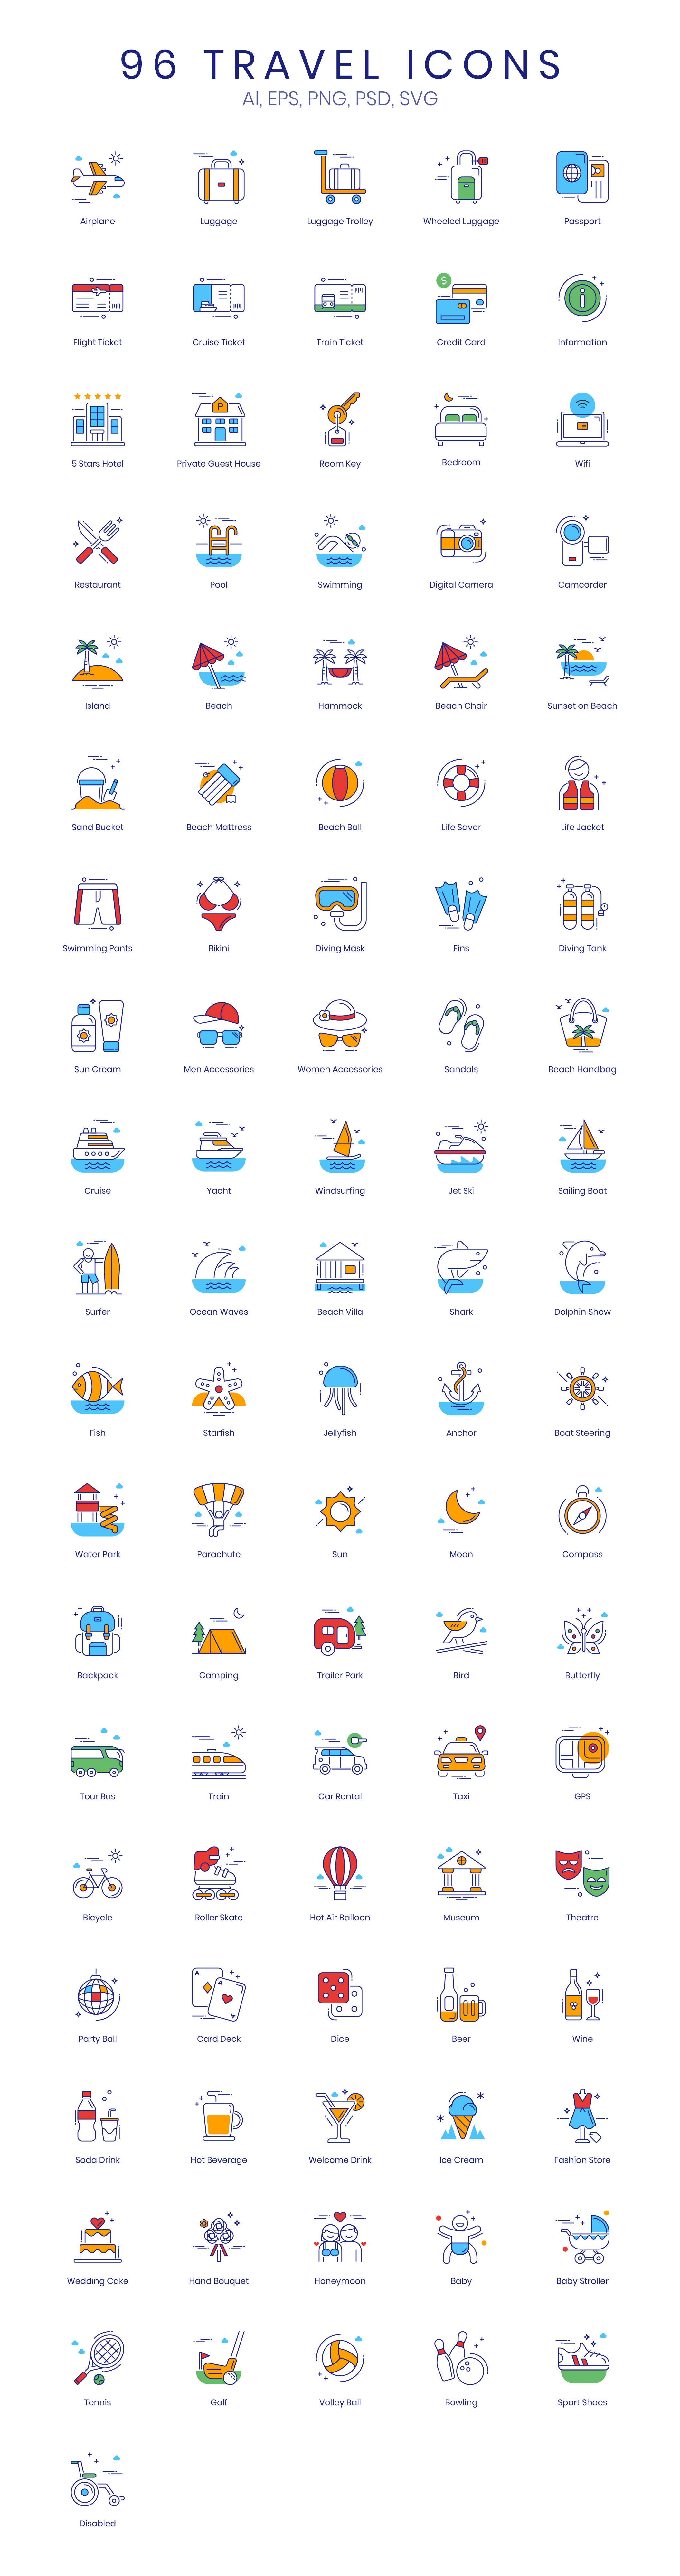 Travel Vector Icons Preview Image